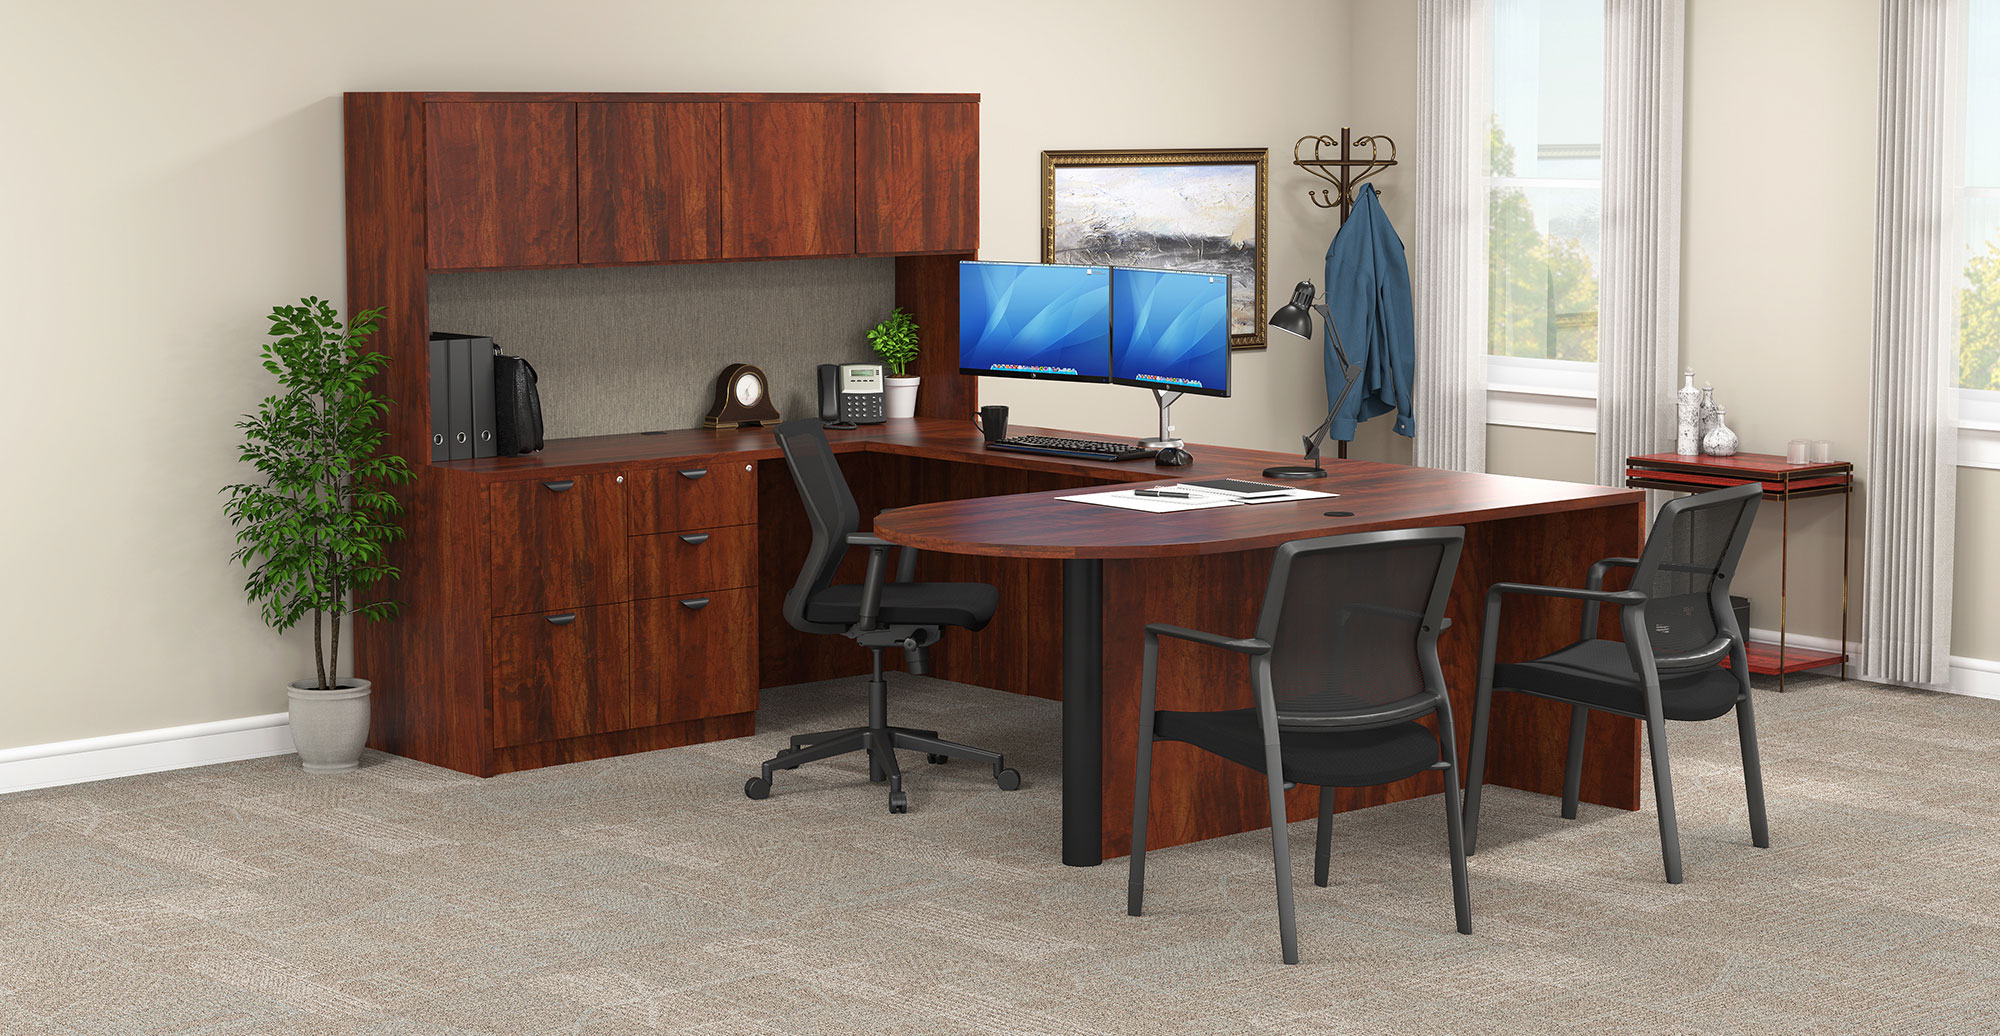 Marvelous Office Furniture Ma Office Furniture Liquidation In Ma In Complete Home Design Collection Barbaintelli Responsecom